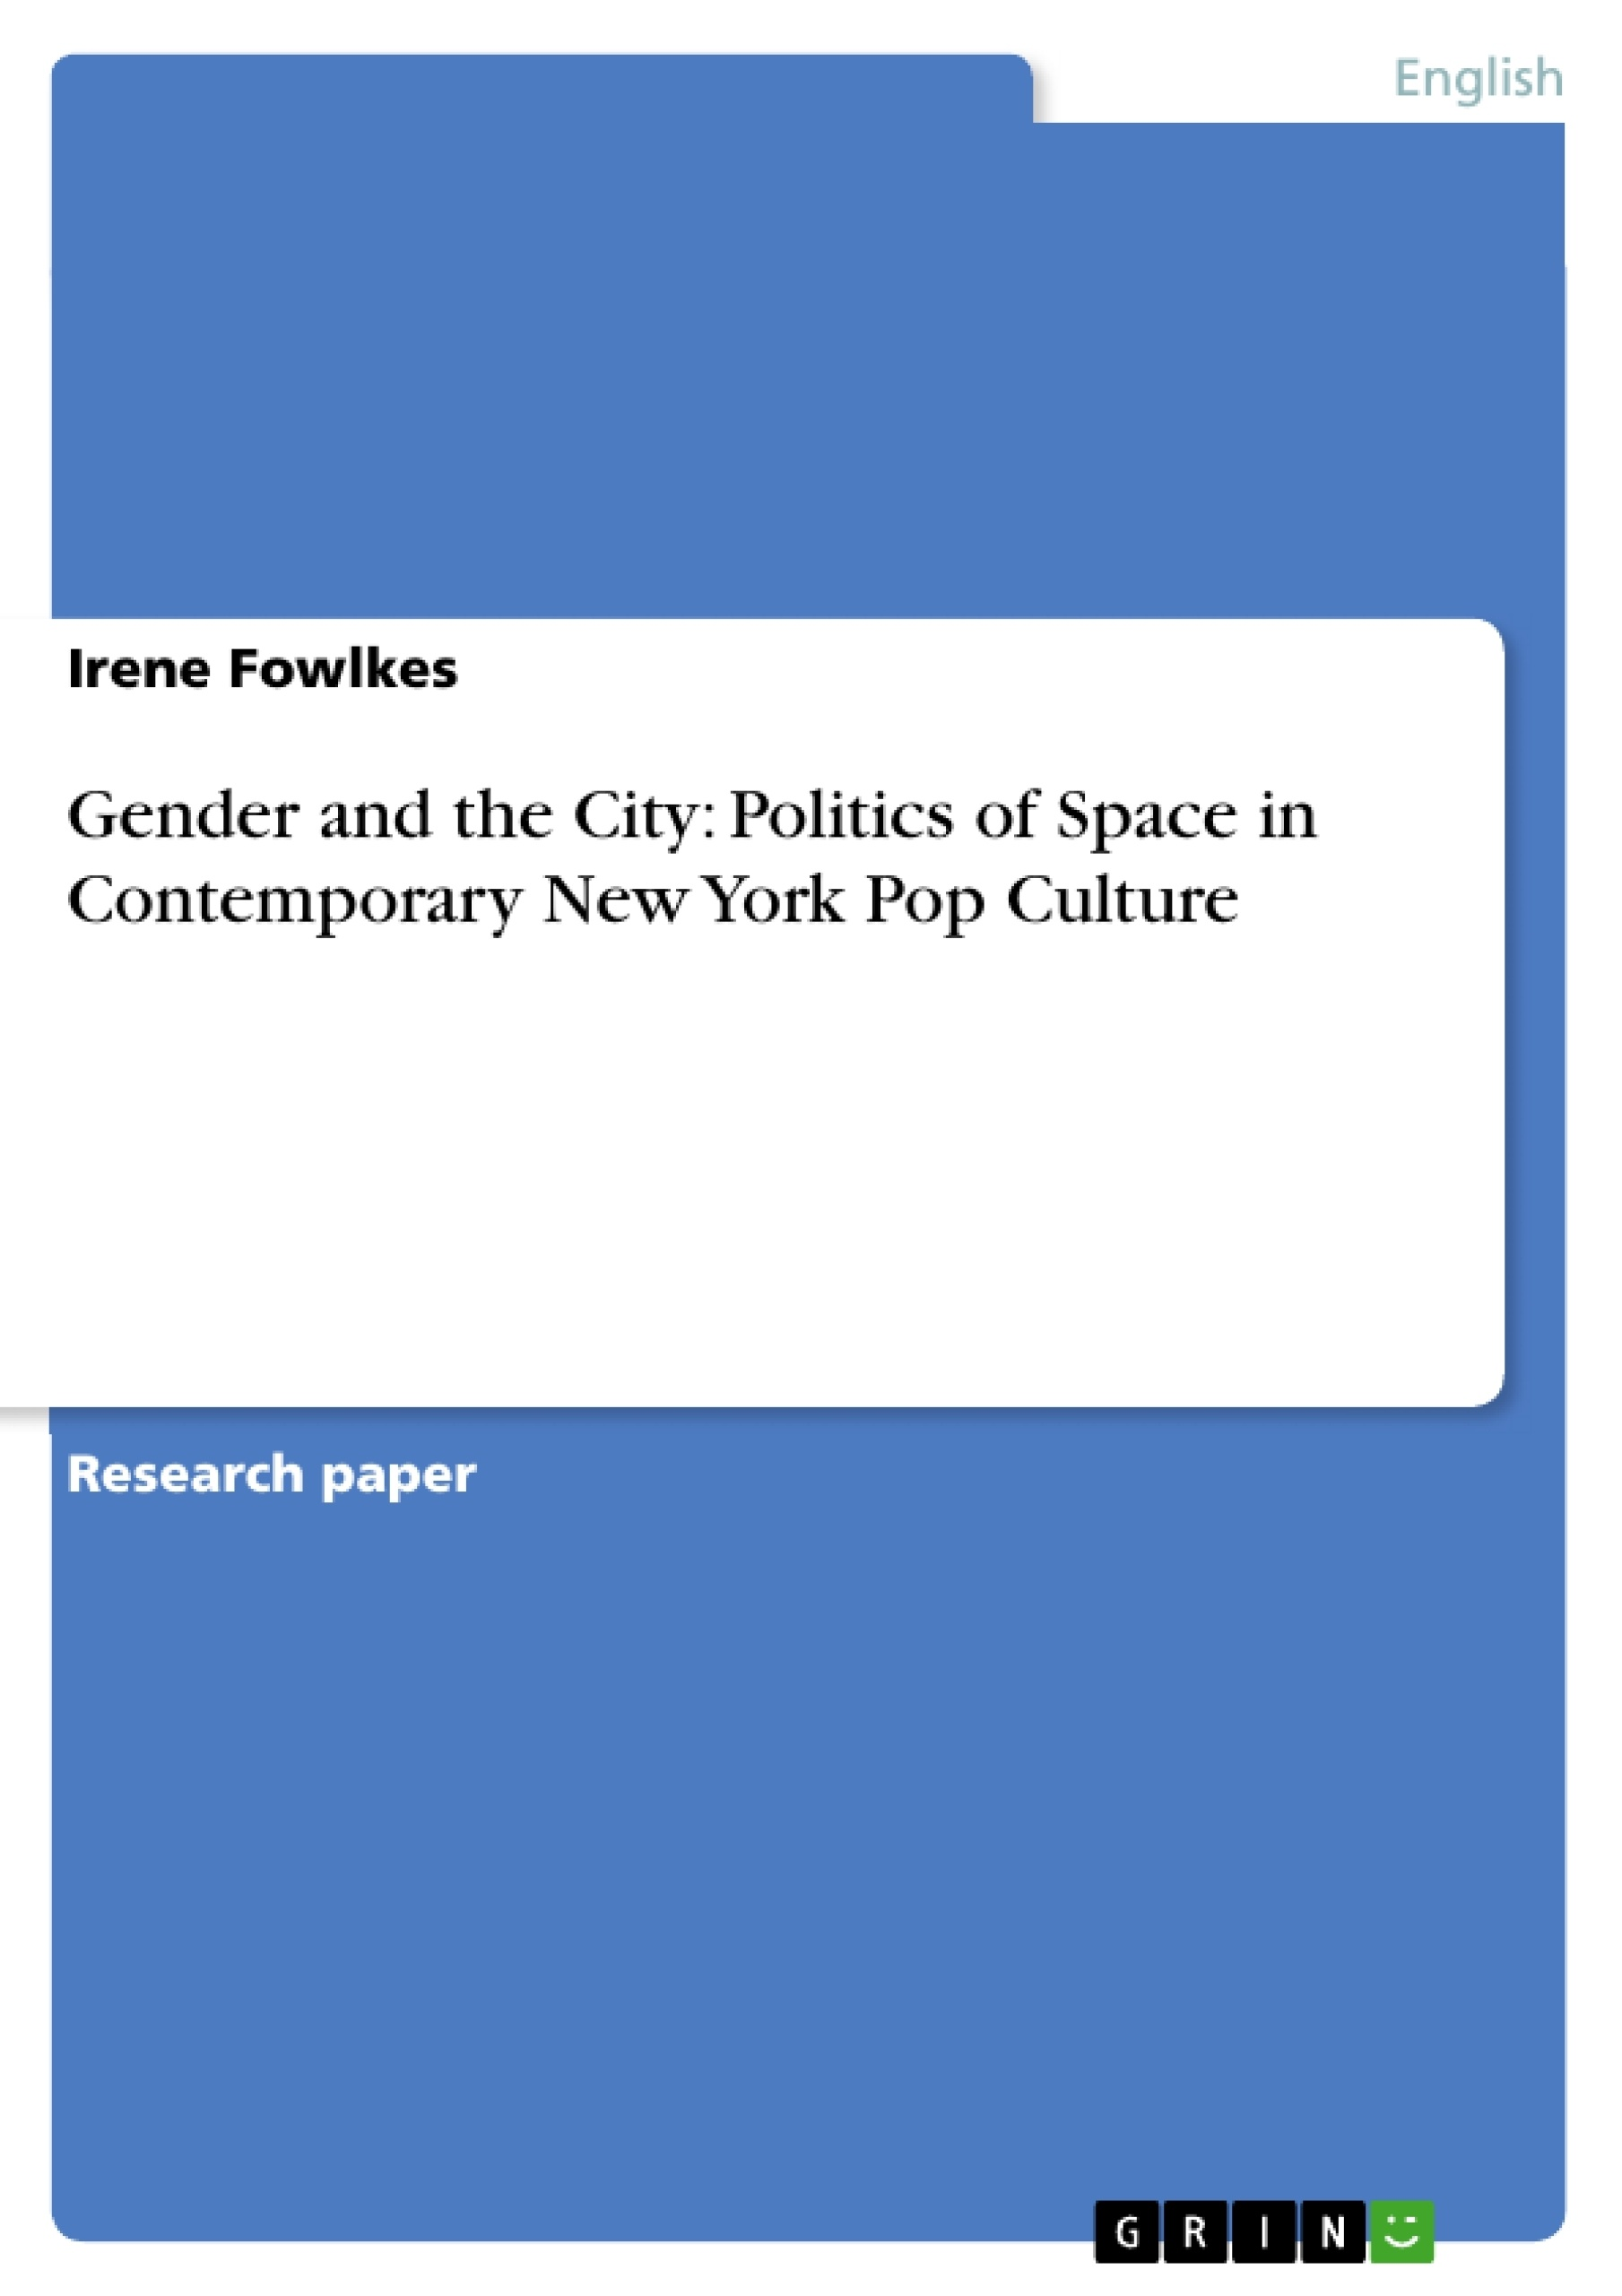 Title: Gender and the City: Politics of Space in Contemporary New York Pop Culture